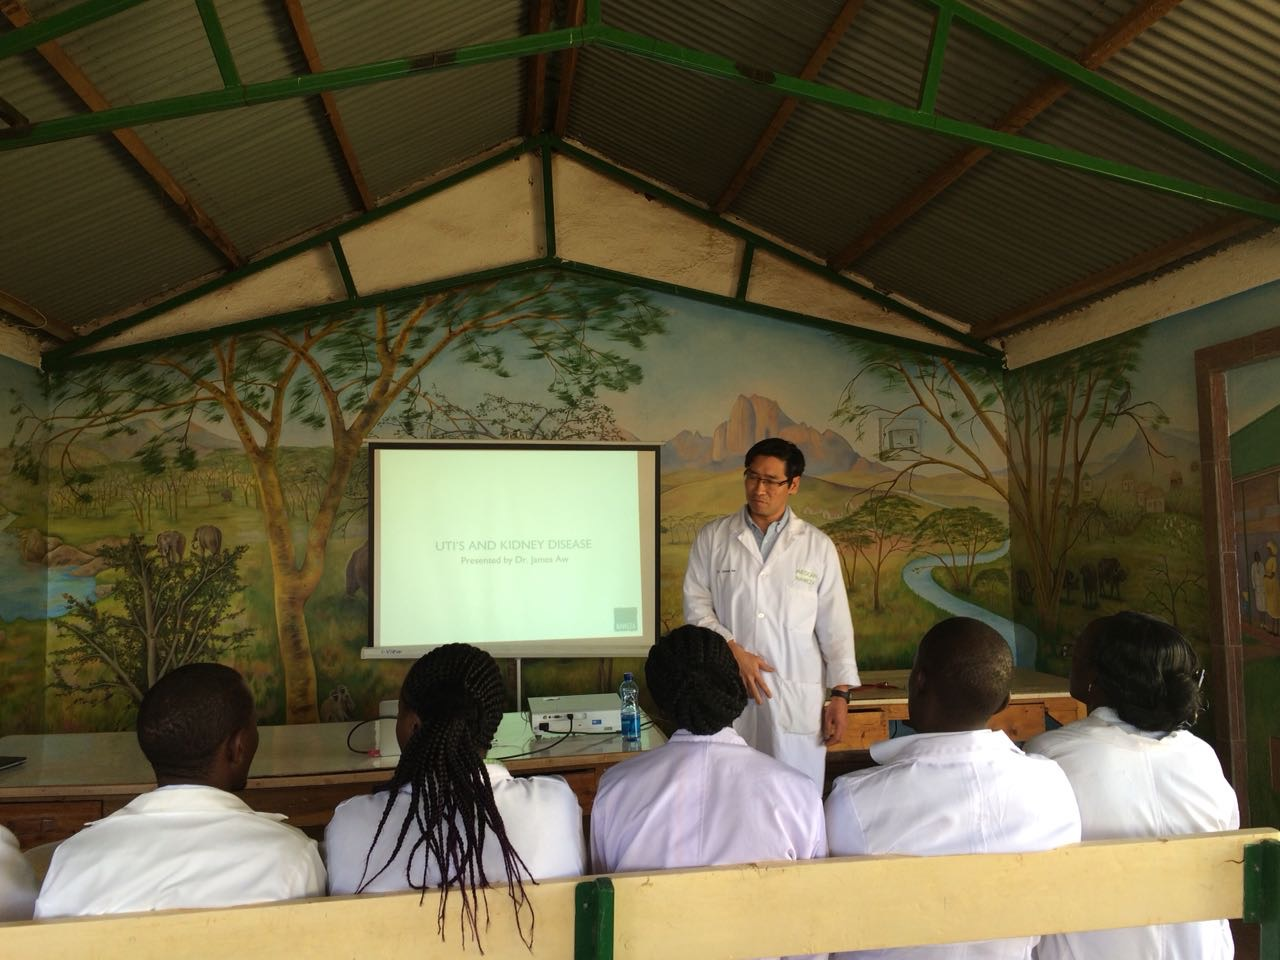 Dr. James leading a talk on UTIs and kidney disease